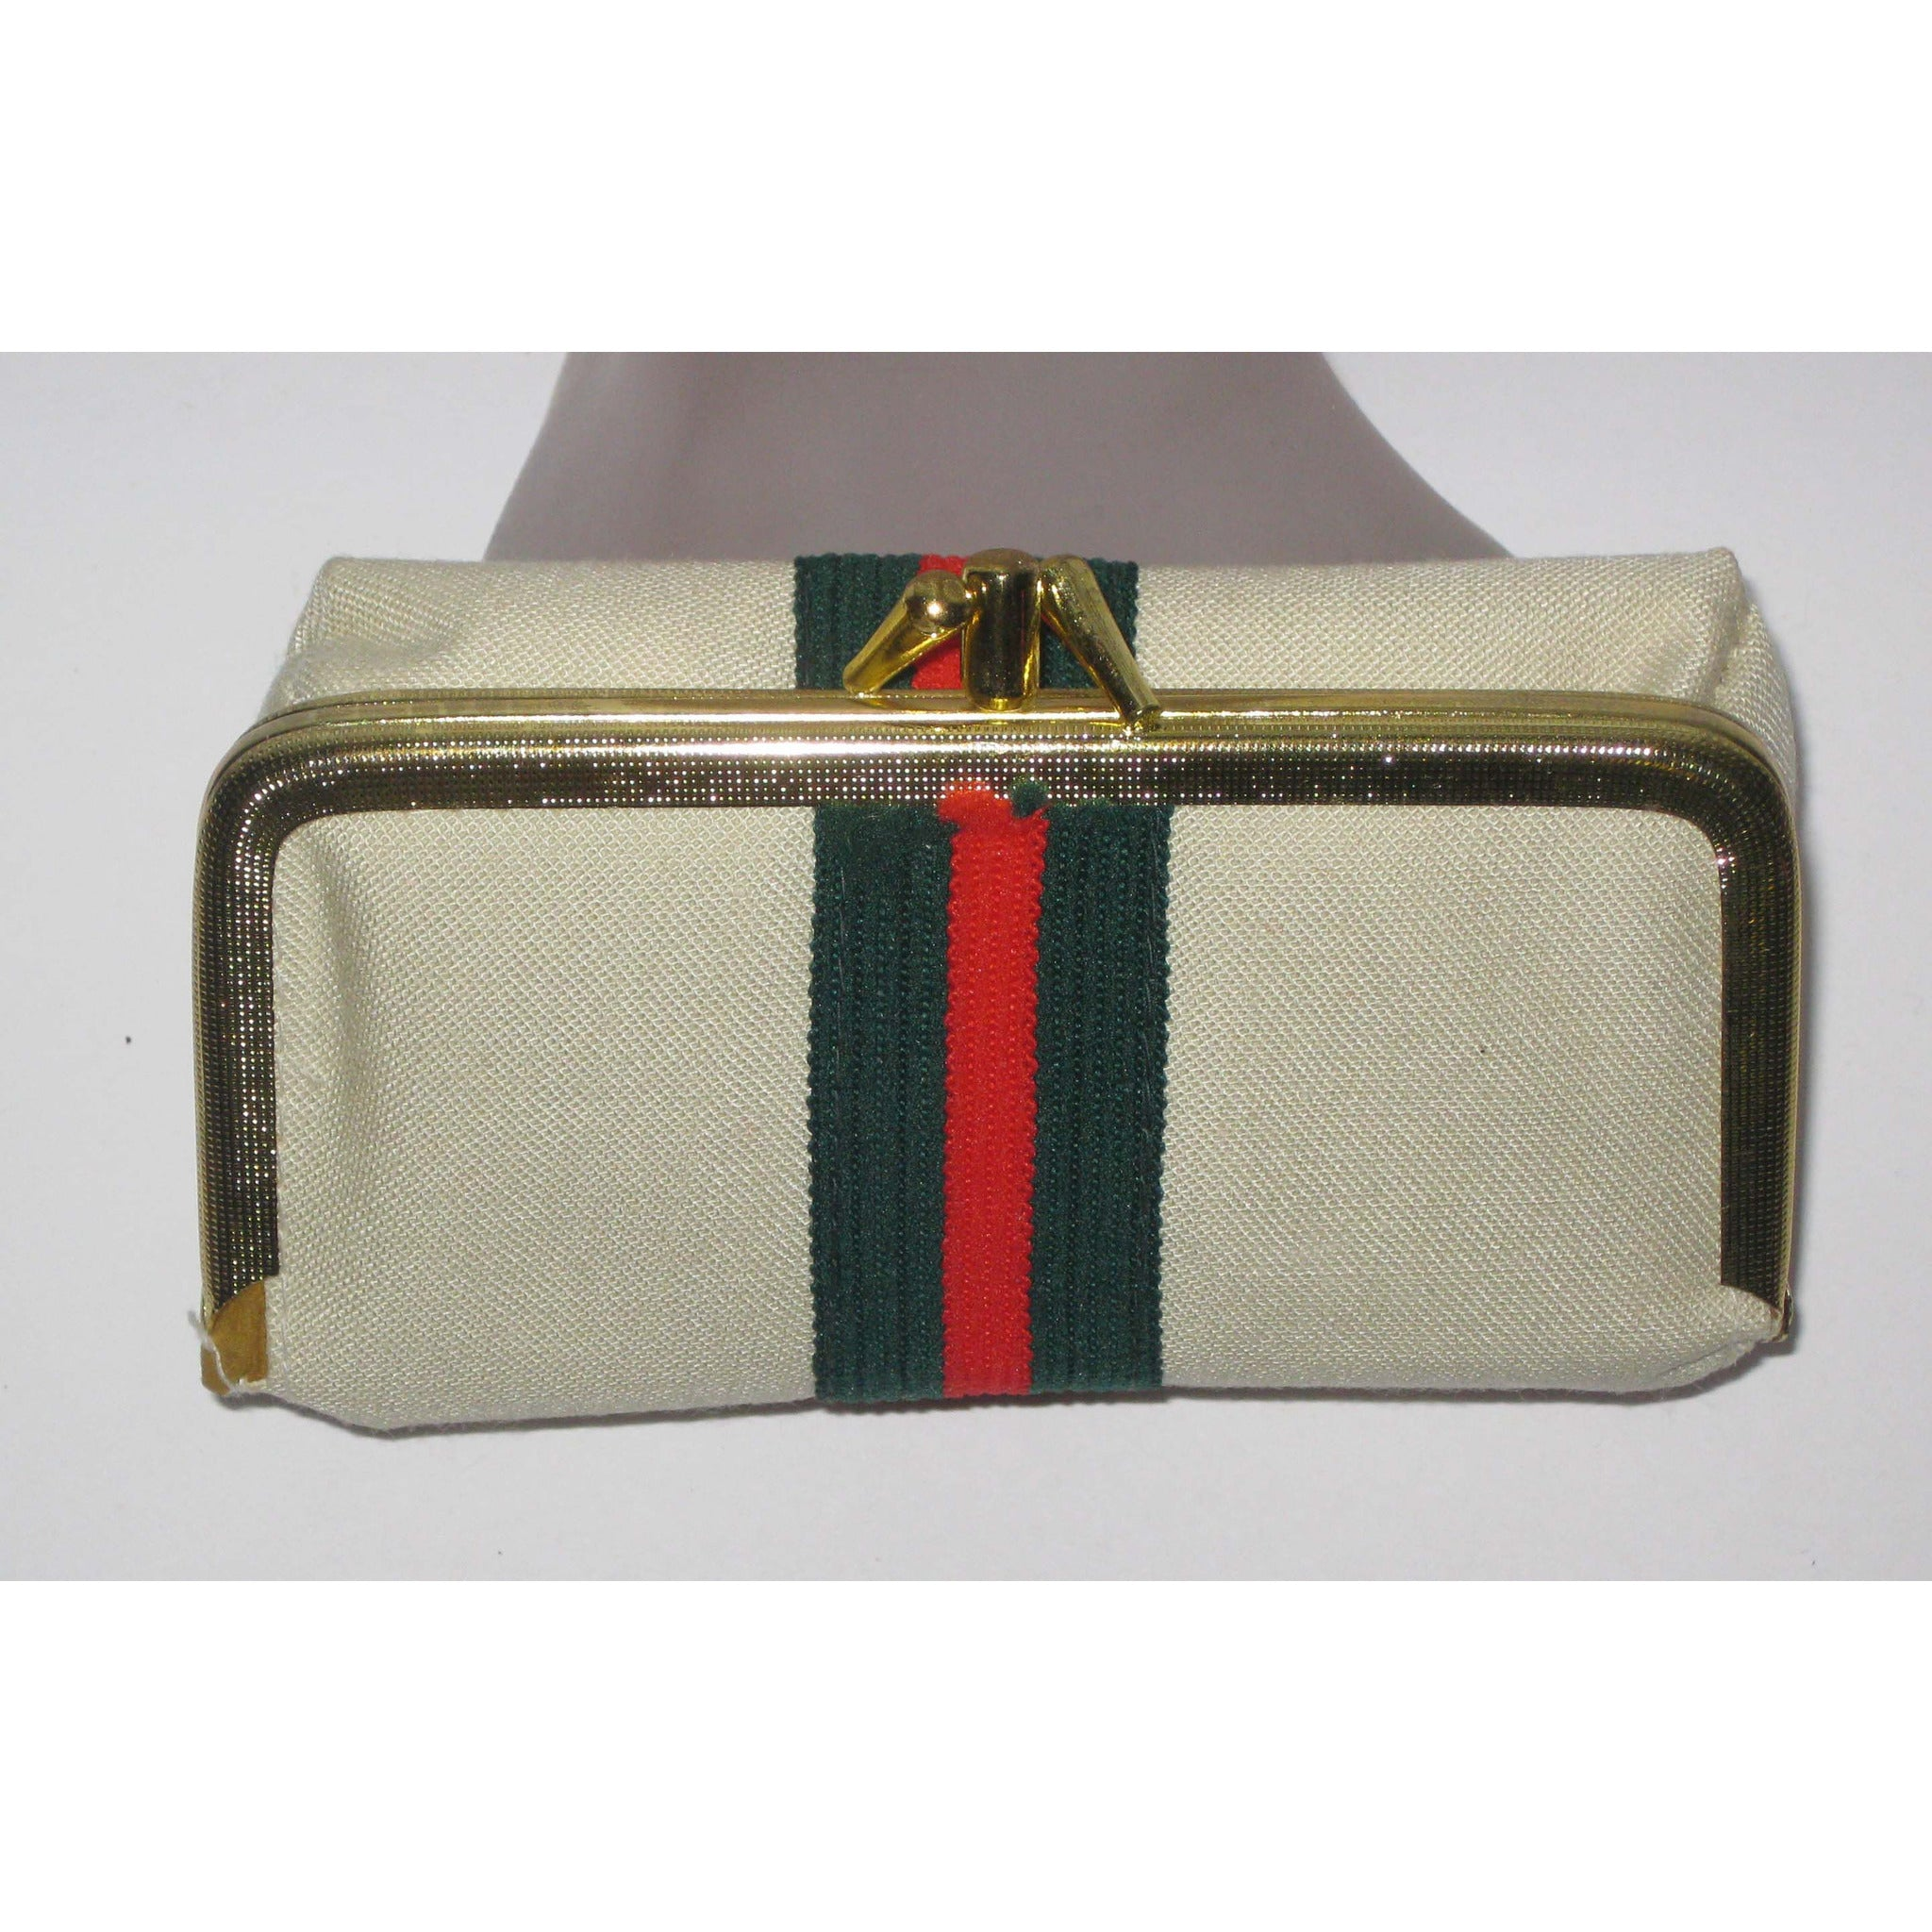 Vintage Striped Canvas All-n-One Coin Purse